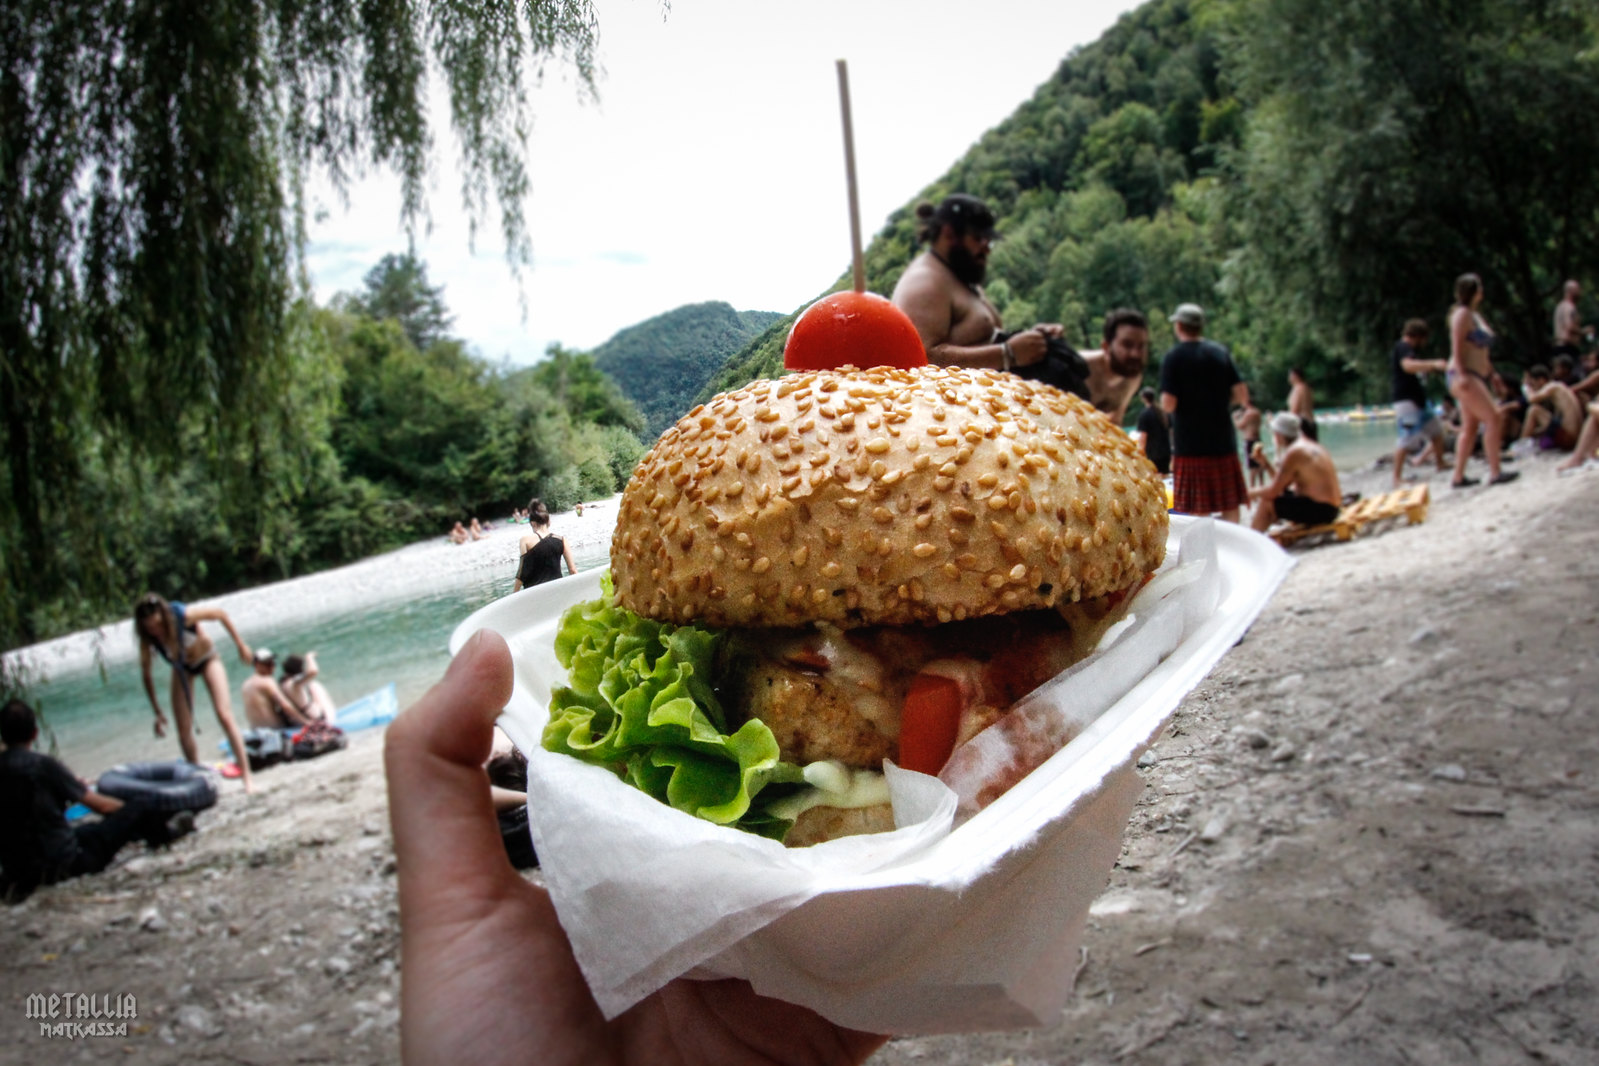 metaldays 2017, metaldays, tolmin, slovenia, metal festivals in europe, festival food, tofu burger